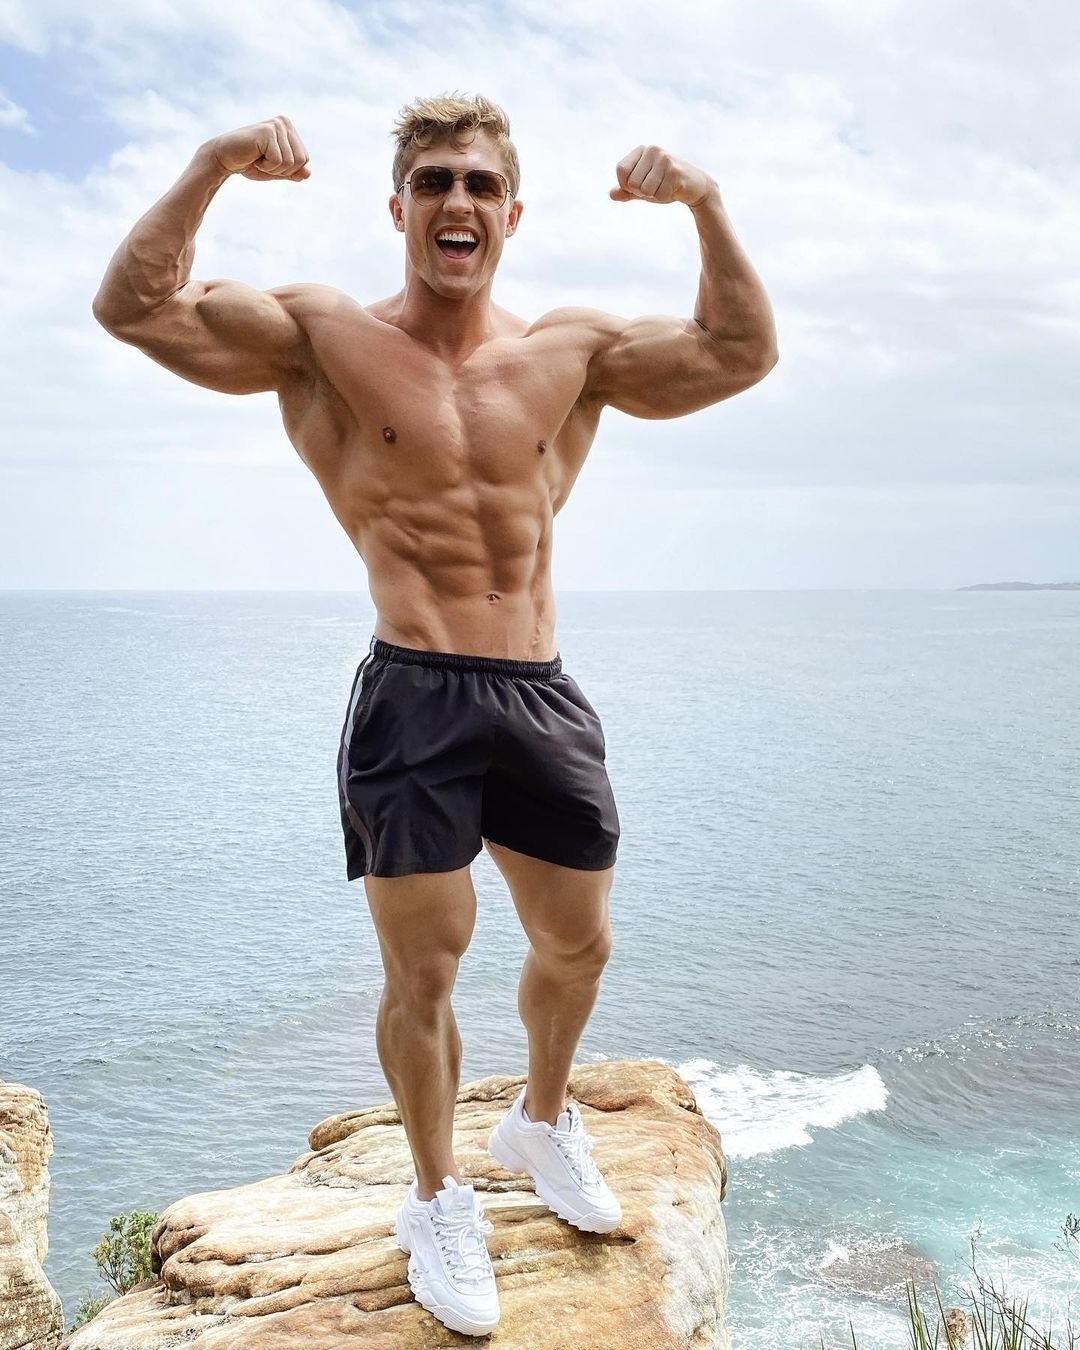 sexy-muscular-shirtless-hunk-smiling-flexing-biceps-strong-body-cocky-straight-sunglasses-bro-amazing-ocean-mountain-view